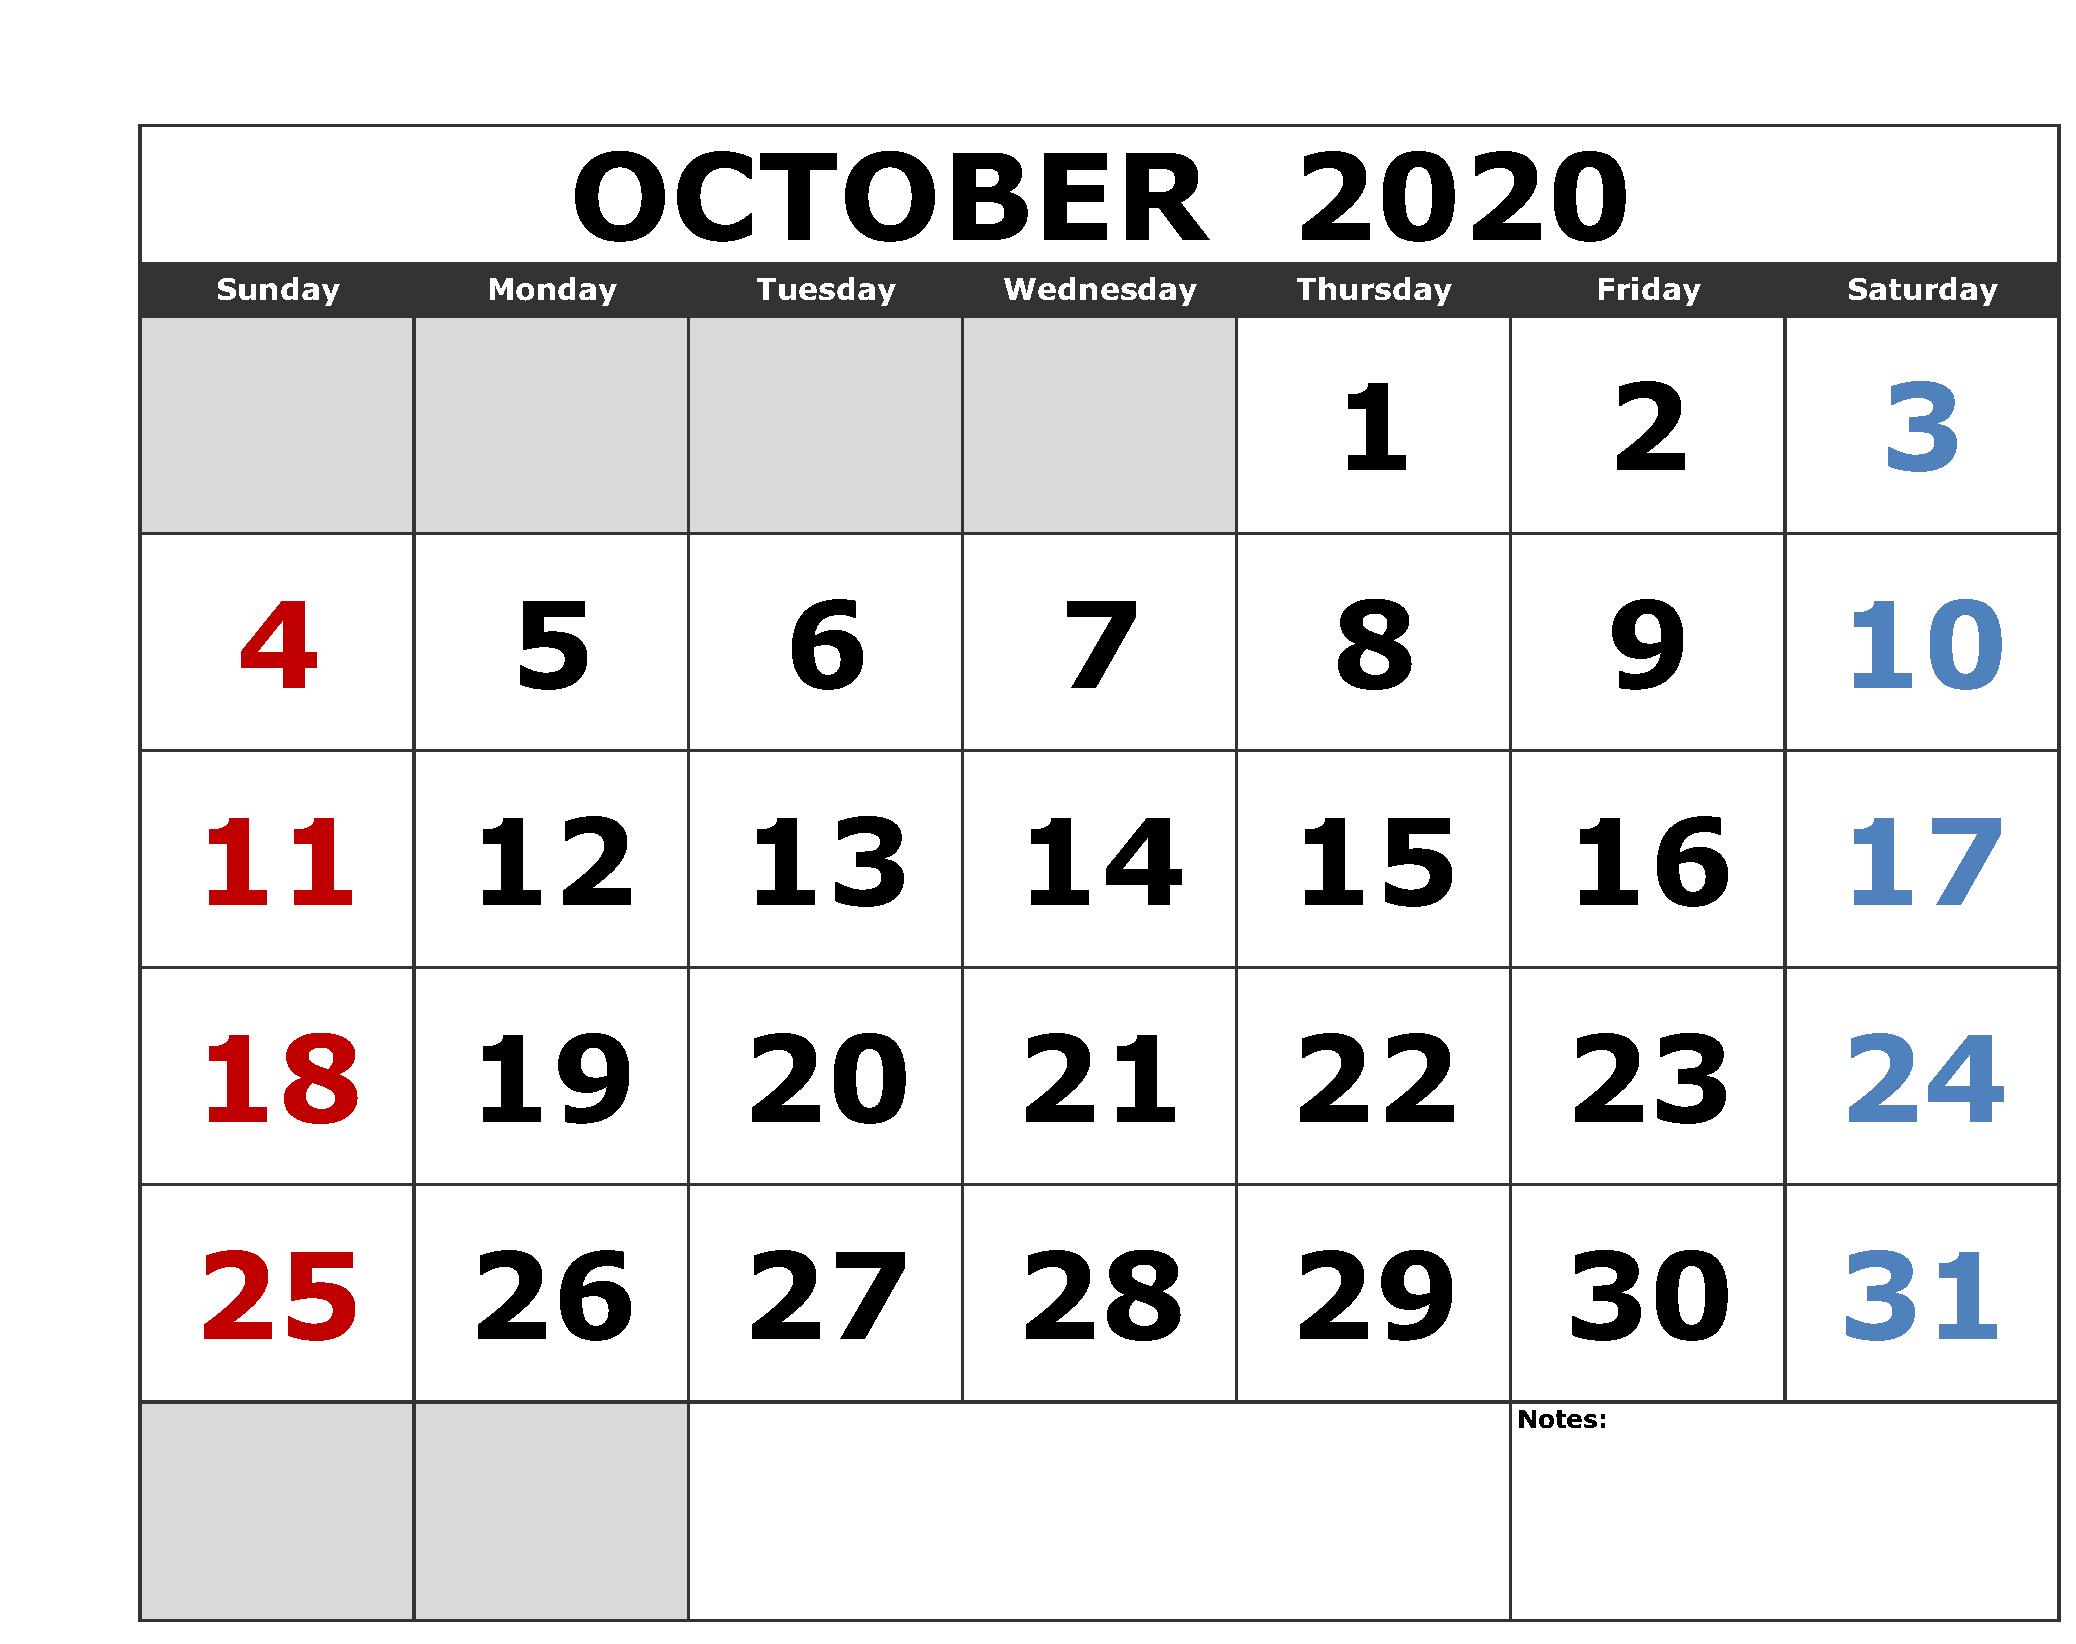 Cute October 2020 Calendar For School And College Exam In